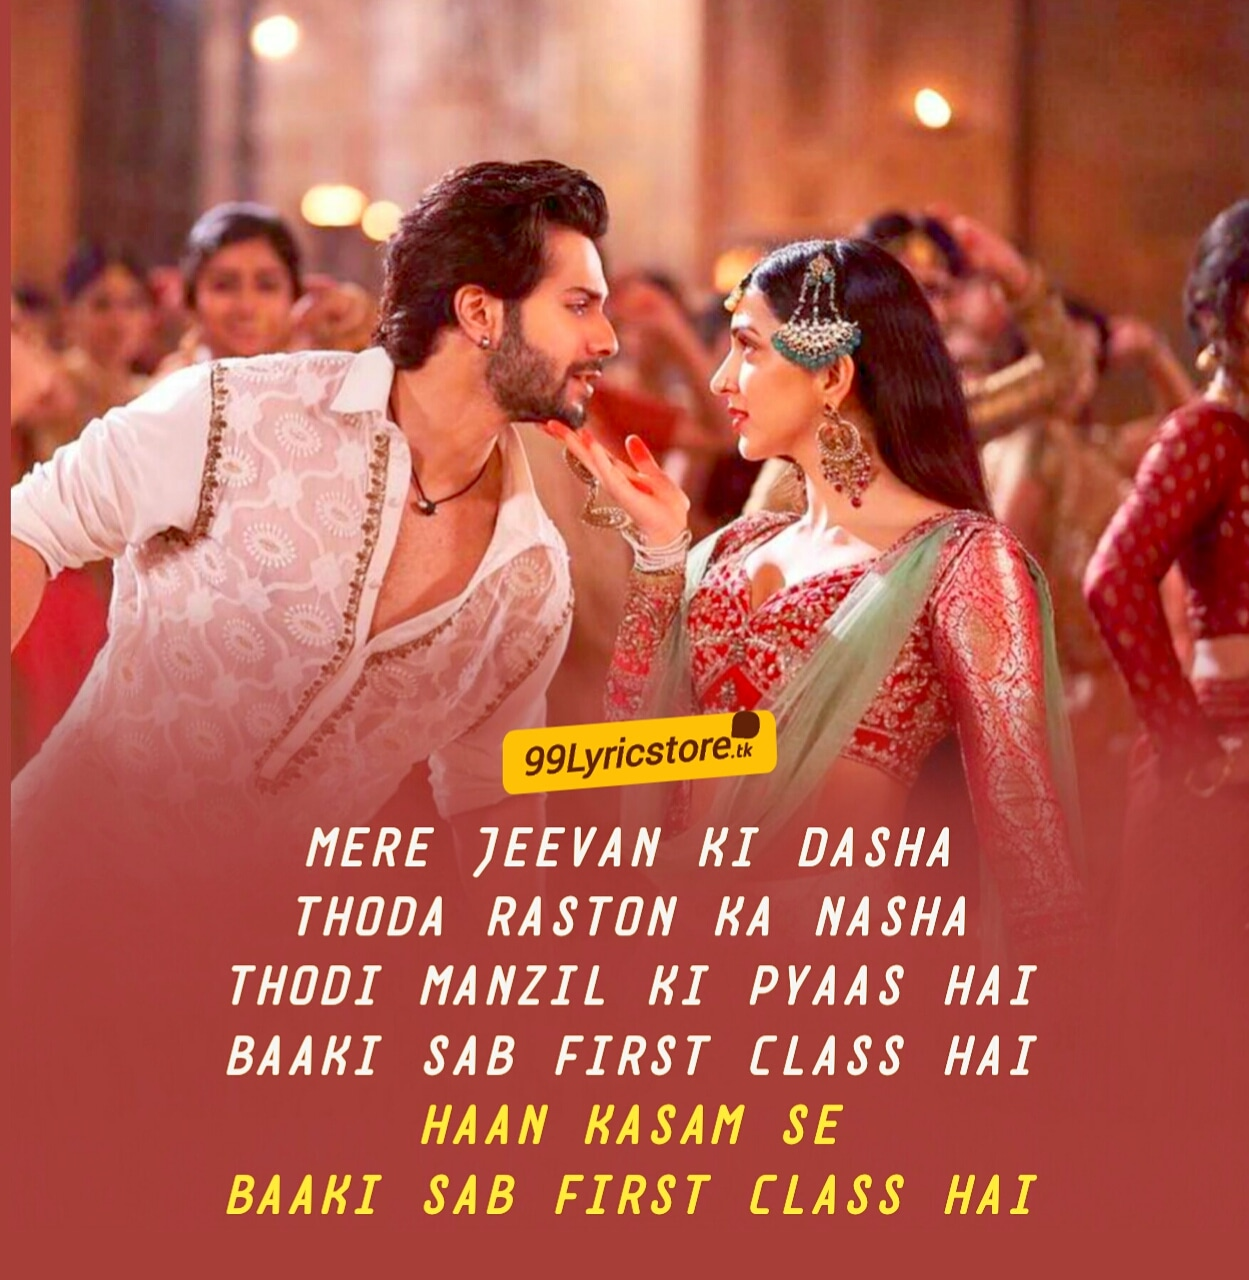 Kalank Song First Class Lyrics Arijit Singh,Neeti Mohan and Pritam